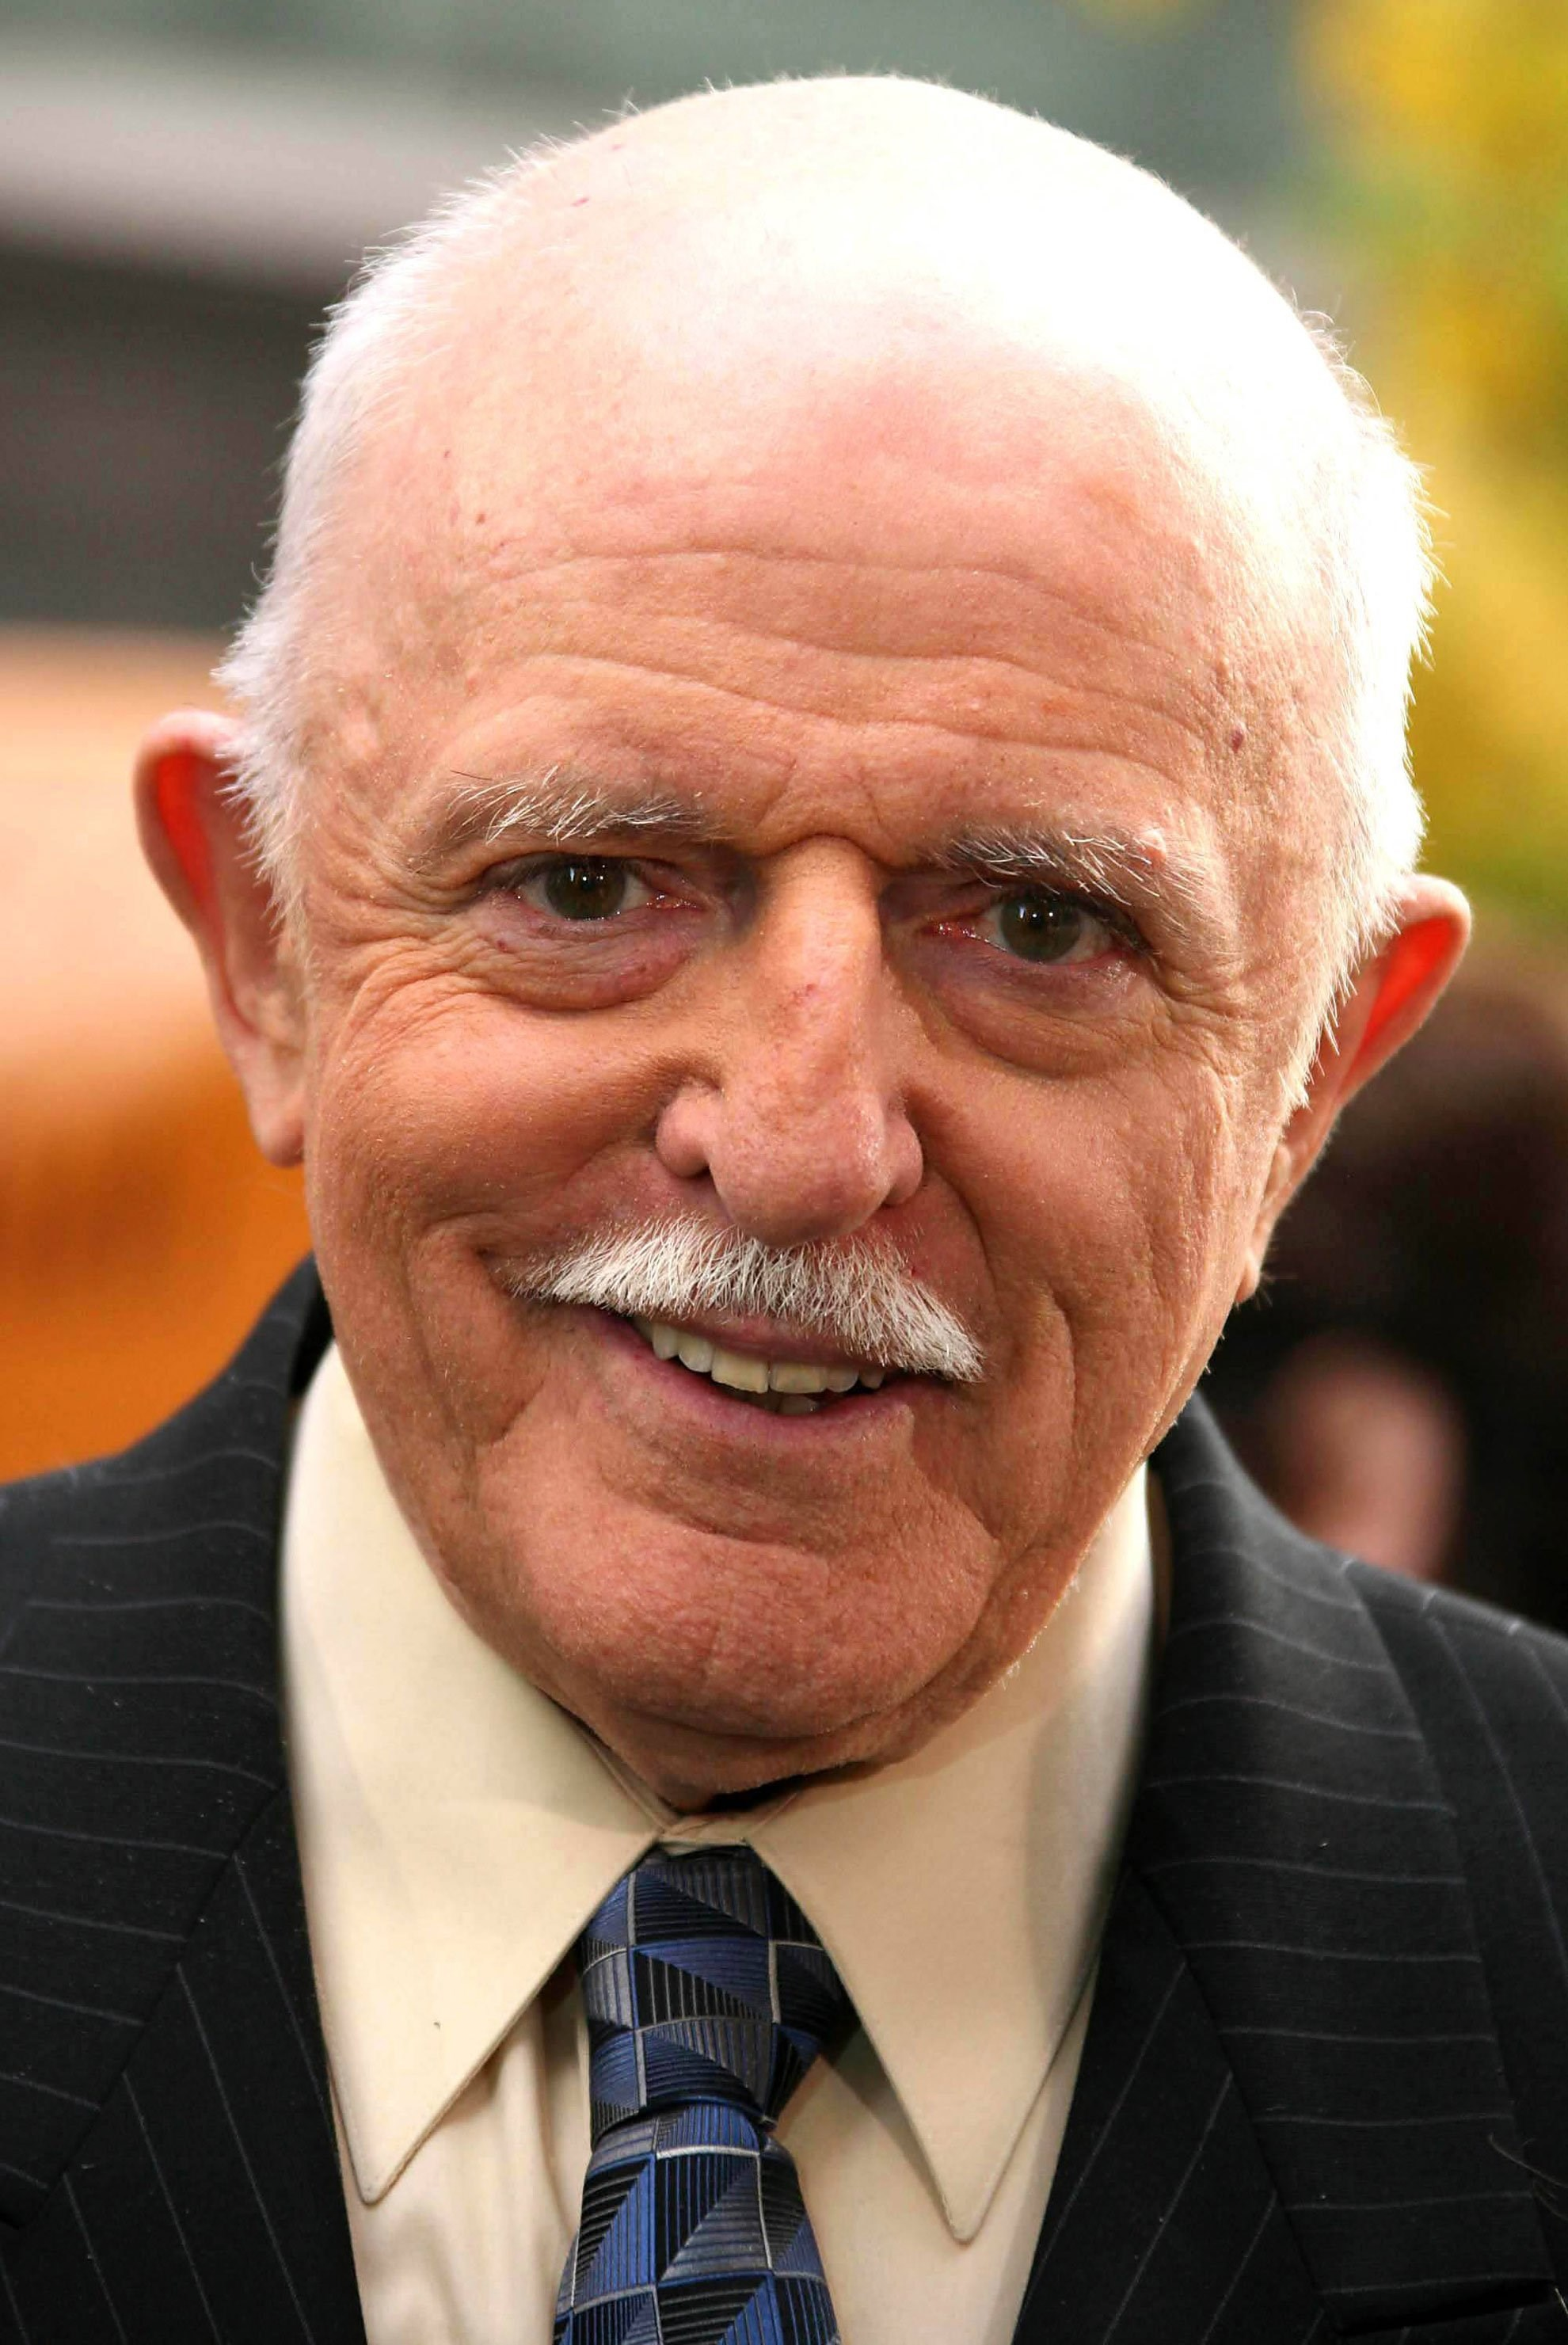 john astin night courtjohn astin actor, john astin and patty duke, john astin wiki, john astin 2015, john astin and carolyn jones, john astin edgar allan poe, john astin imdb, john astin net worth, john astin riddler, john astin movies, john astin still alive, john astin death date, john astin night court, john astin today